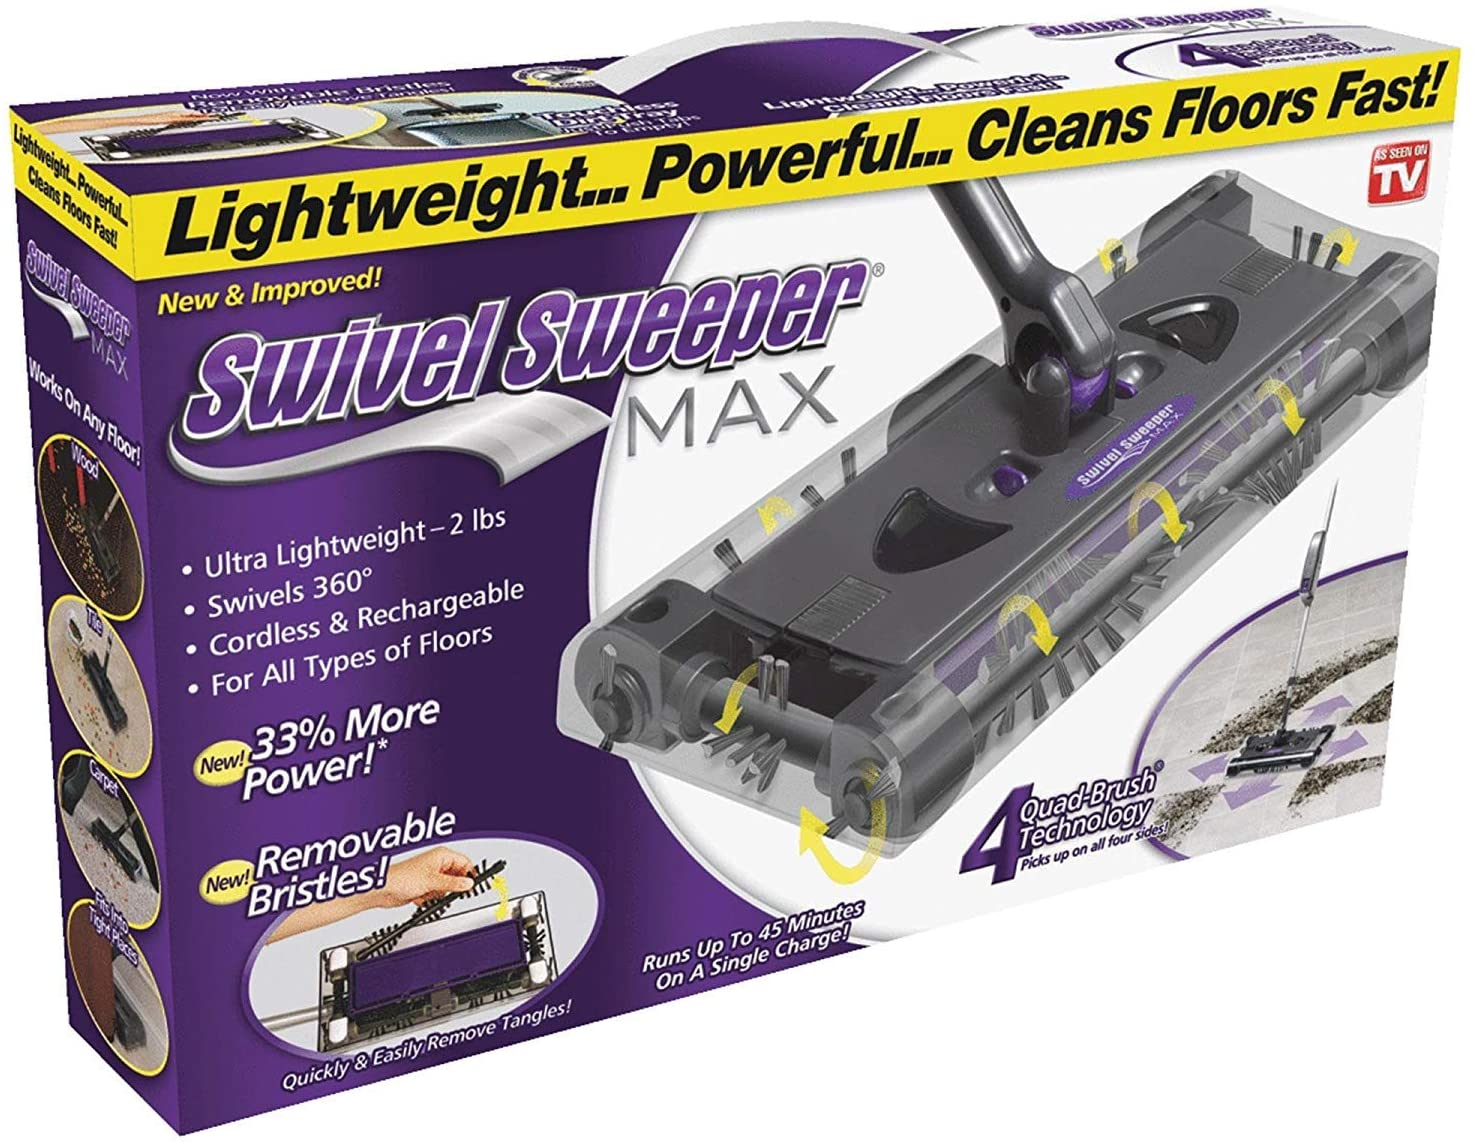 Cordless Swivel Sweeper – Original New life by Ranking TOP7 on TV Seen As